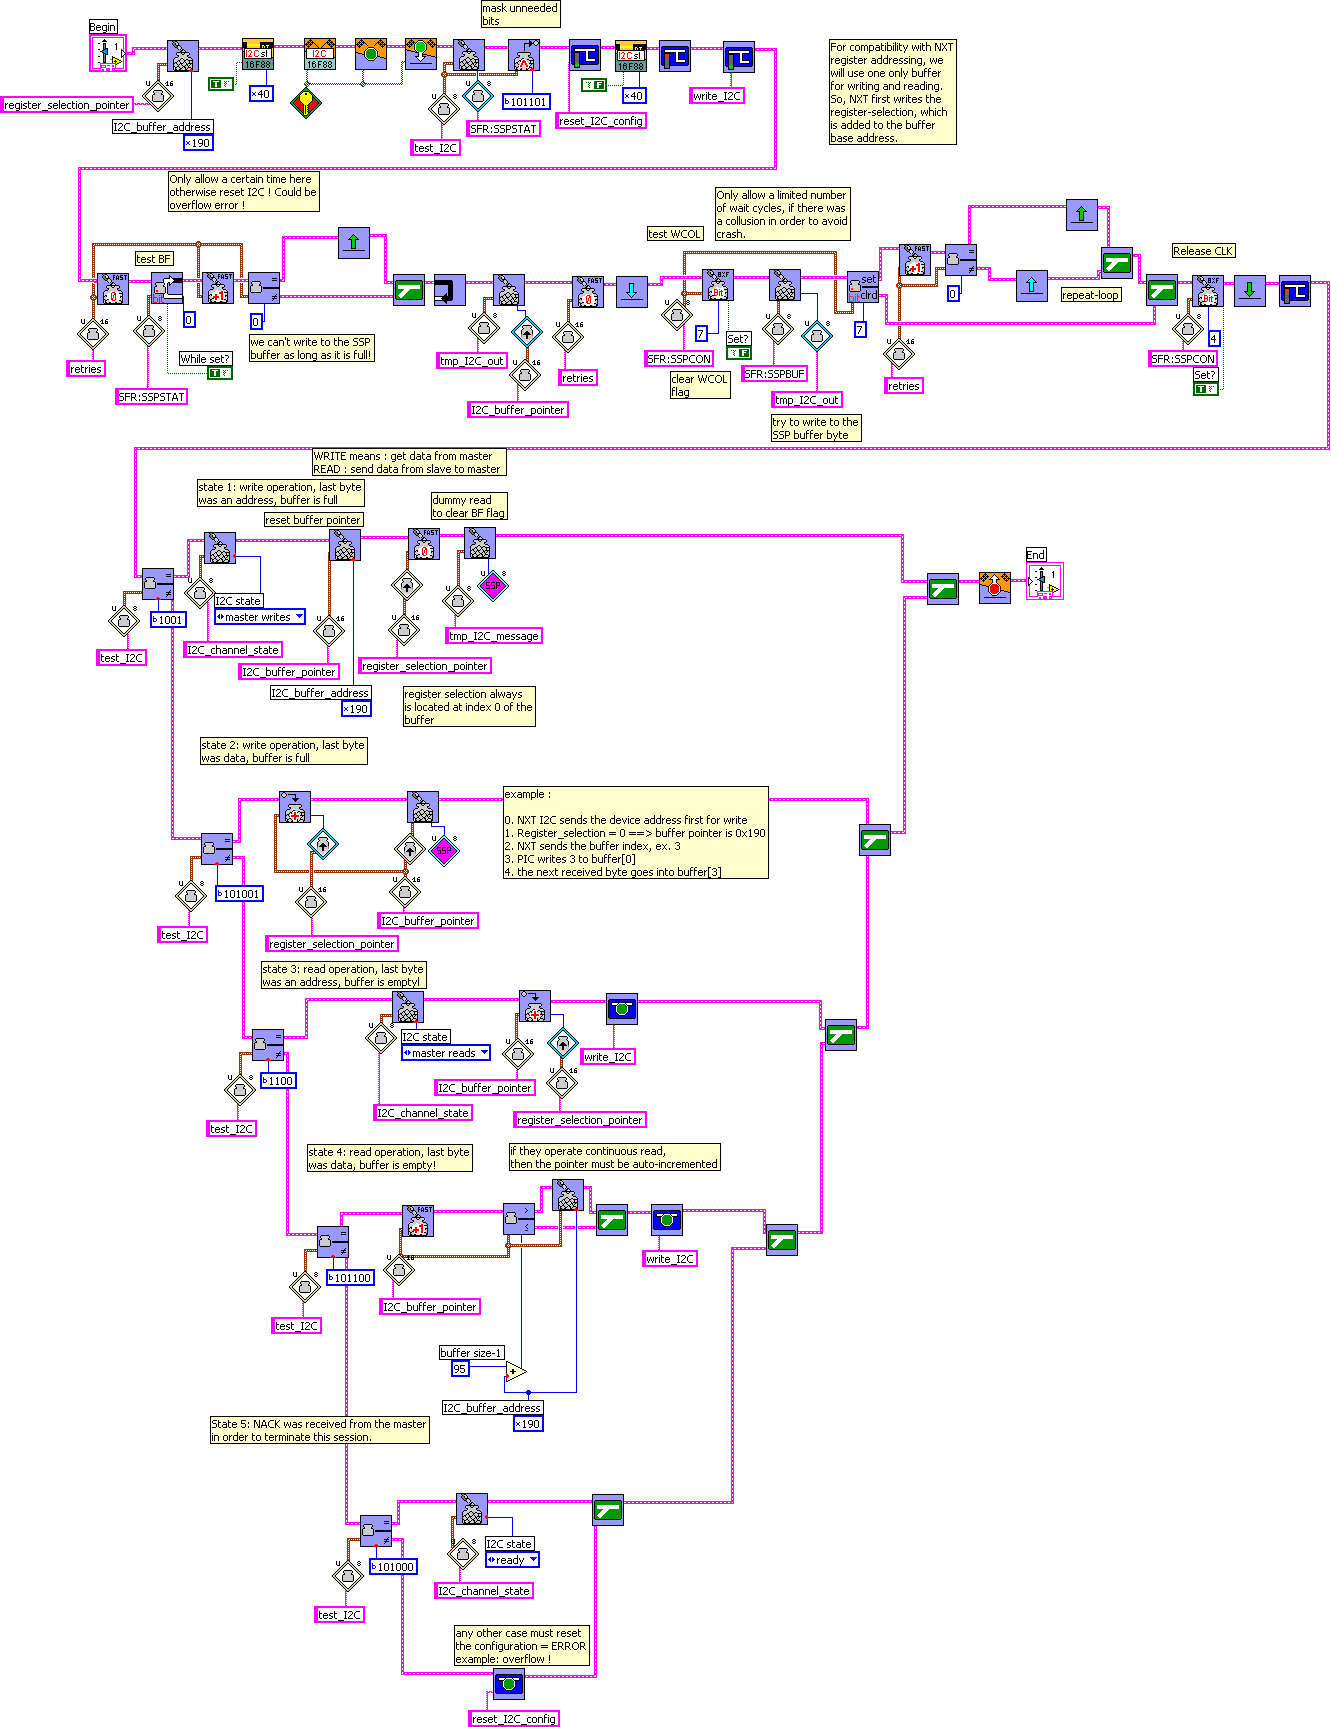 Gps Ttl Level 8211 Rs232 Converter By Max232 And The Buggy Isr See Above Bug Does Not Affect Communication